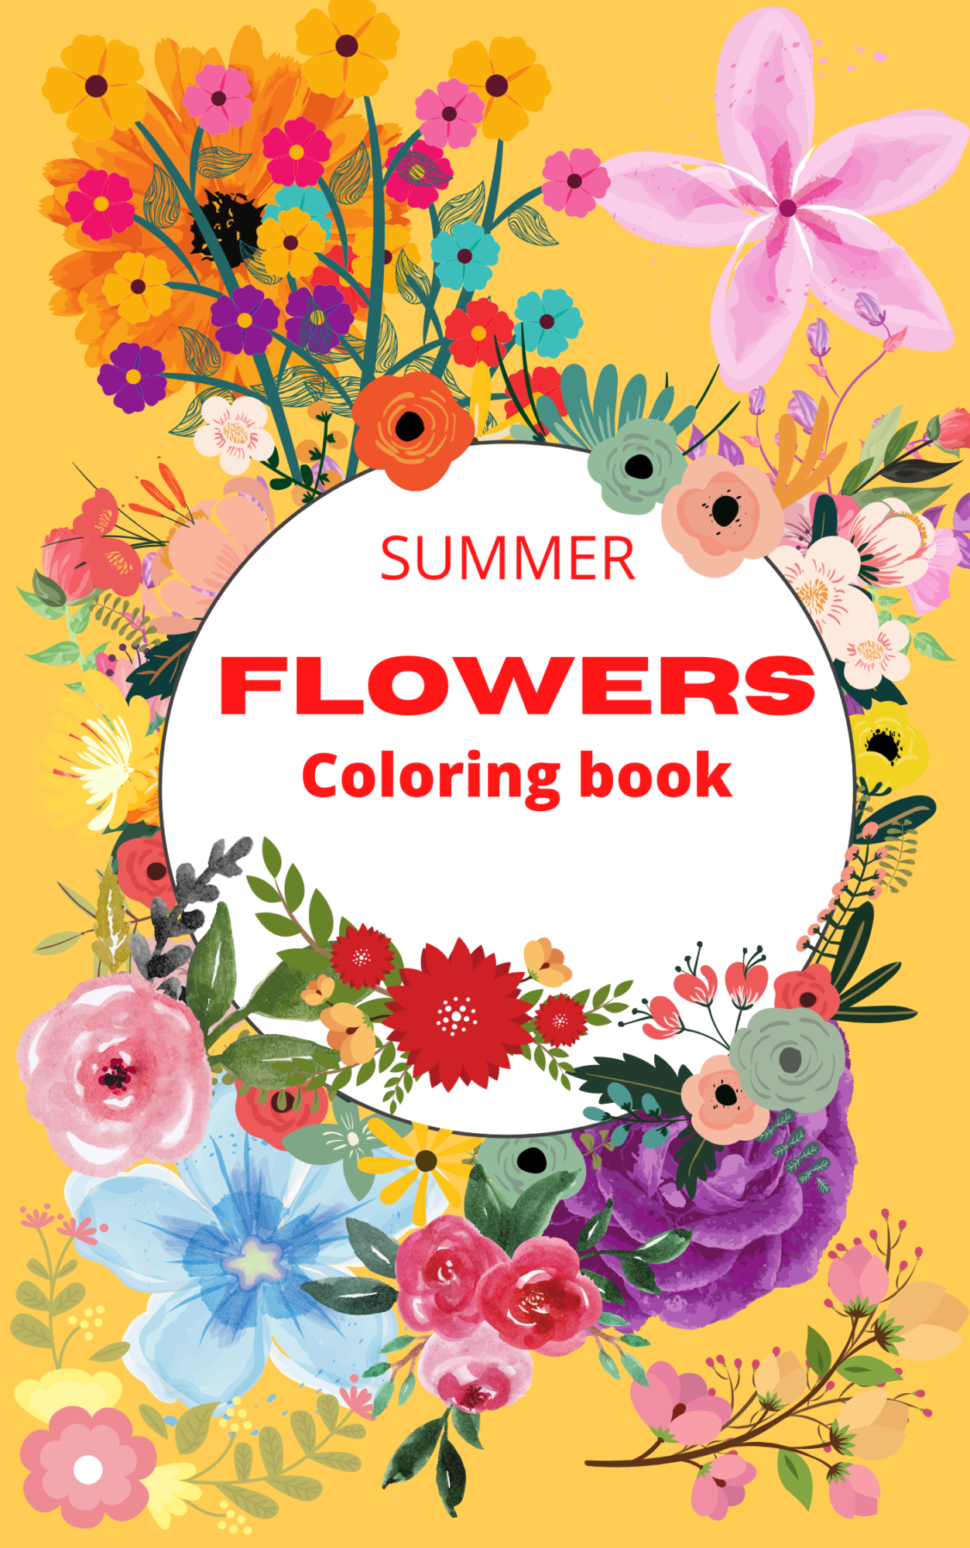 Summer flowers coloring book